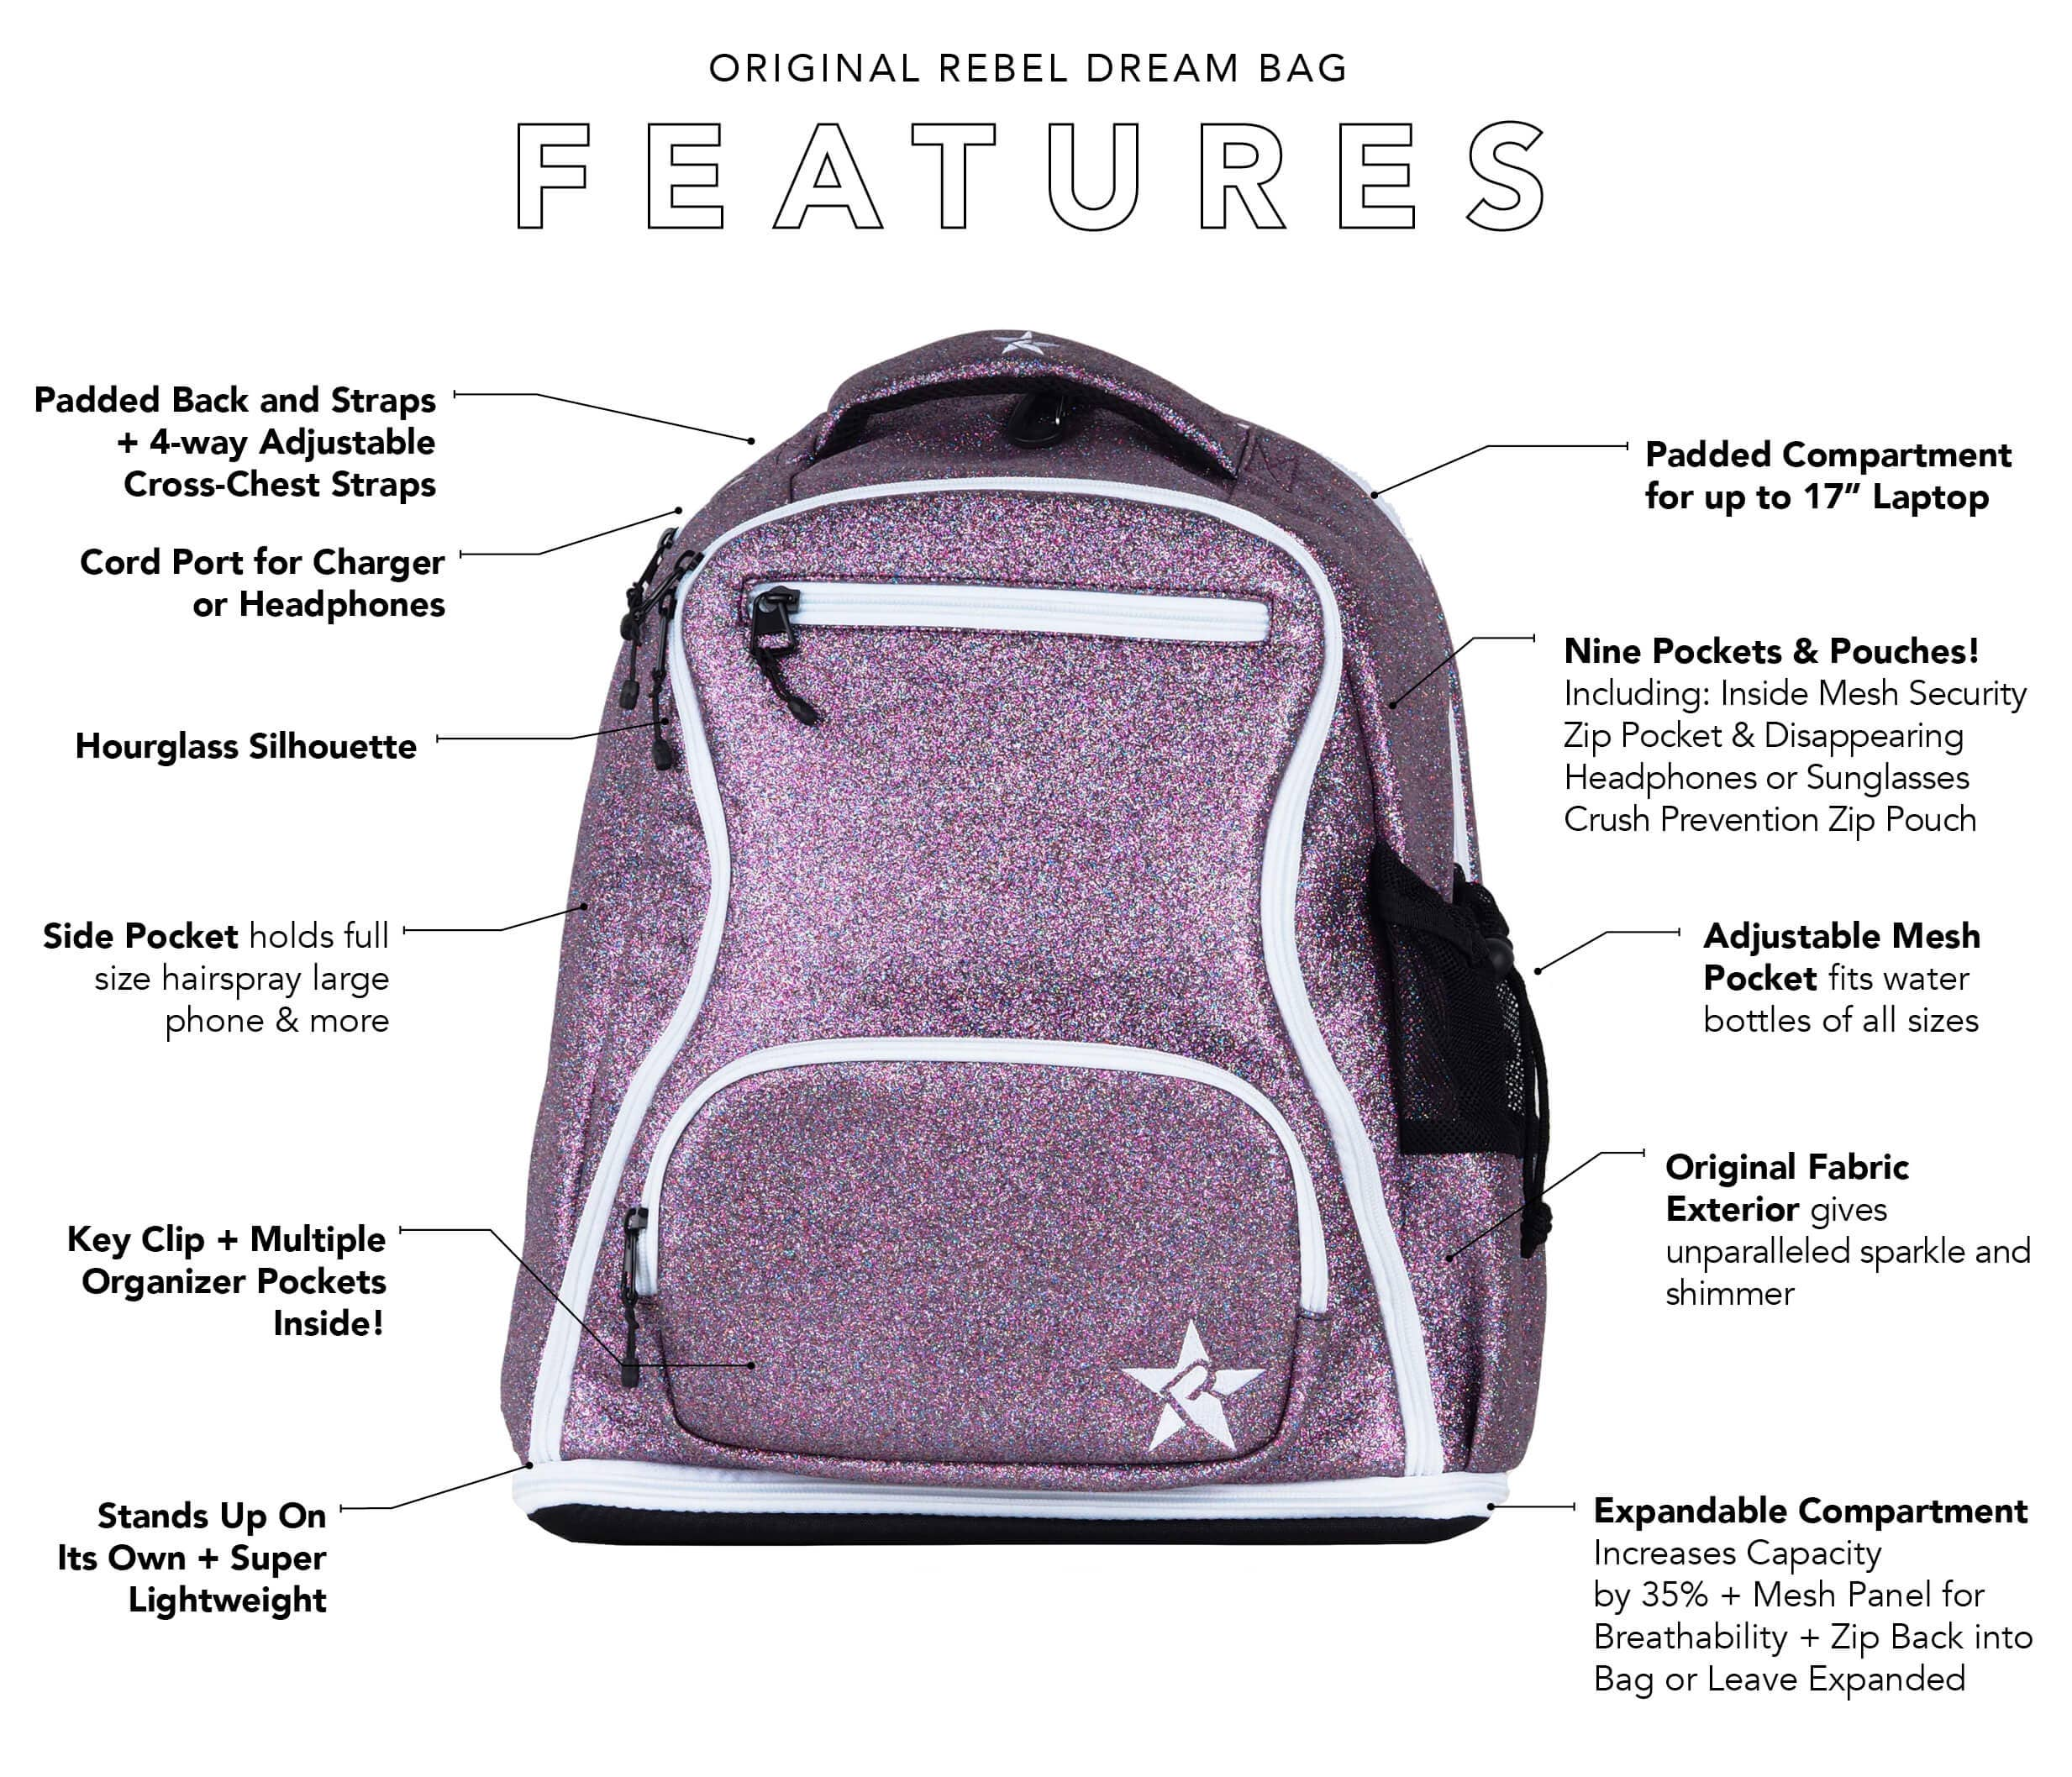 rebel rose gold backpack main features